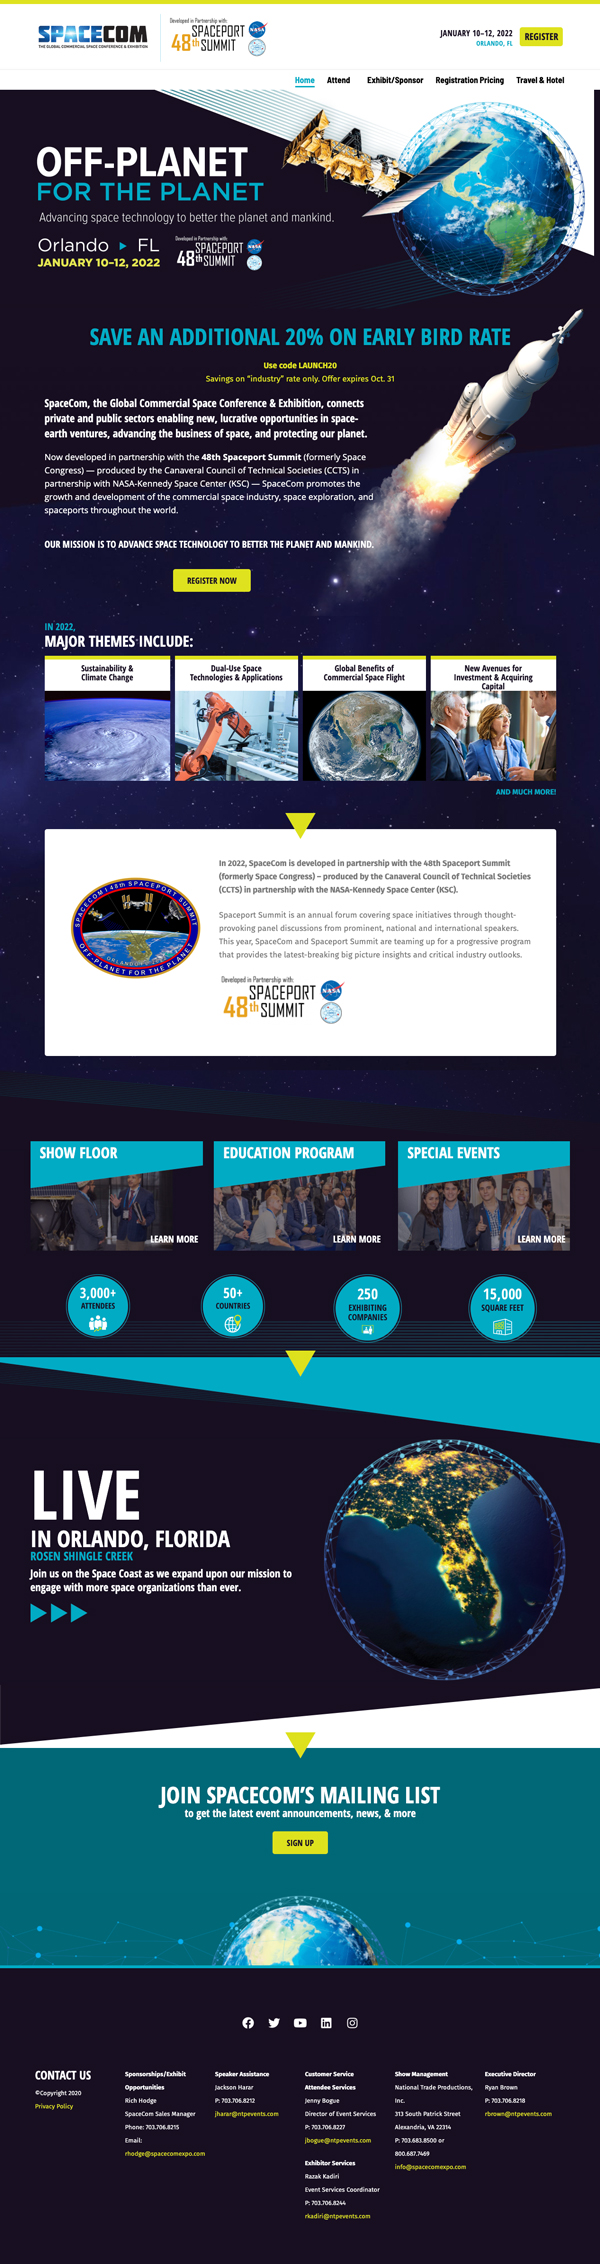 Screenshot: the SpaceCom 2022 Conference and Expo Website Design, as finalized after we delivered final artwork.